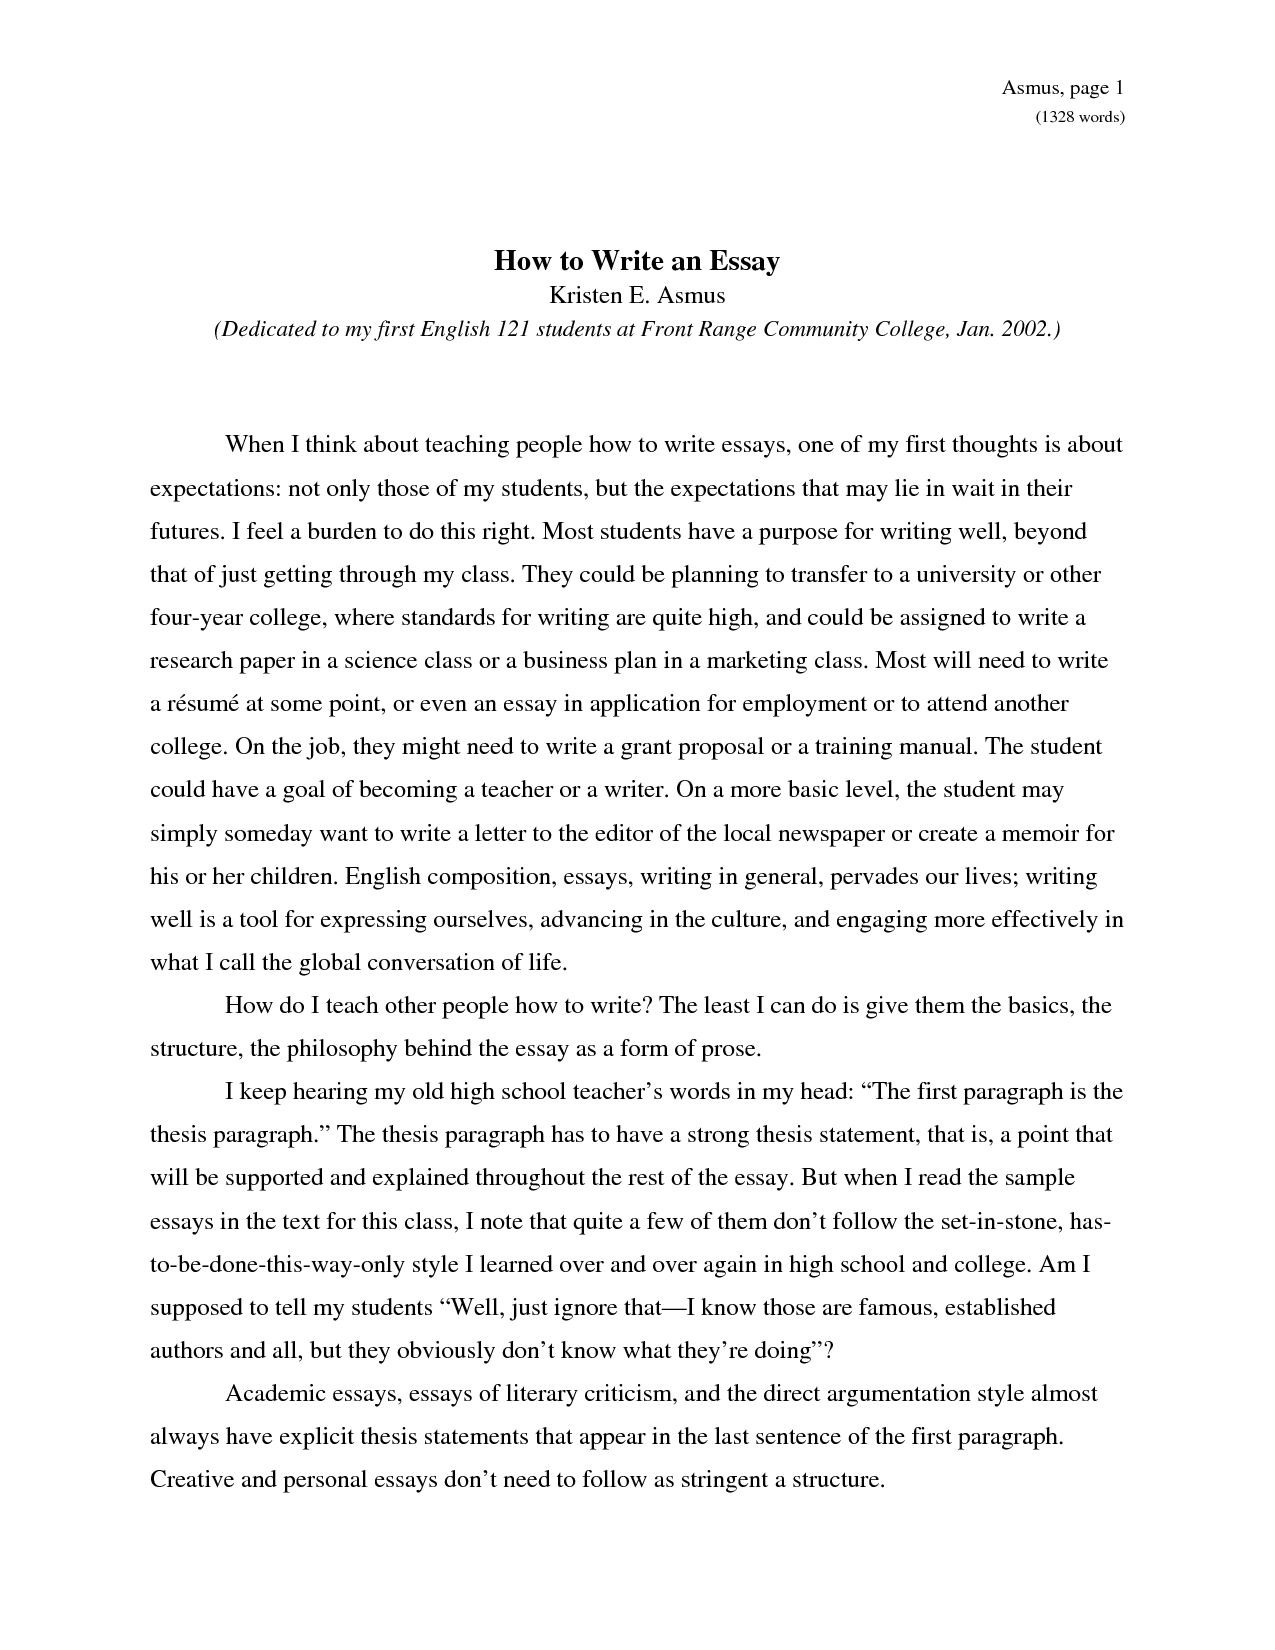 how to write good essays for english Good writing benefits both students and teachers guilty and angry, and think they may die students, too, suffer when they write badly because they get bad grades, which they usually don't enjoy the writing principles seven tips for writing a good paper good writing benefits both.